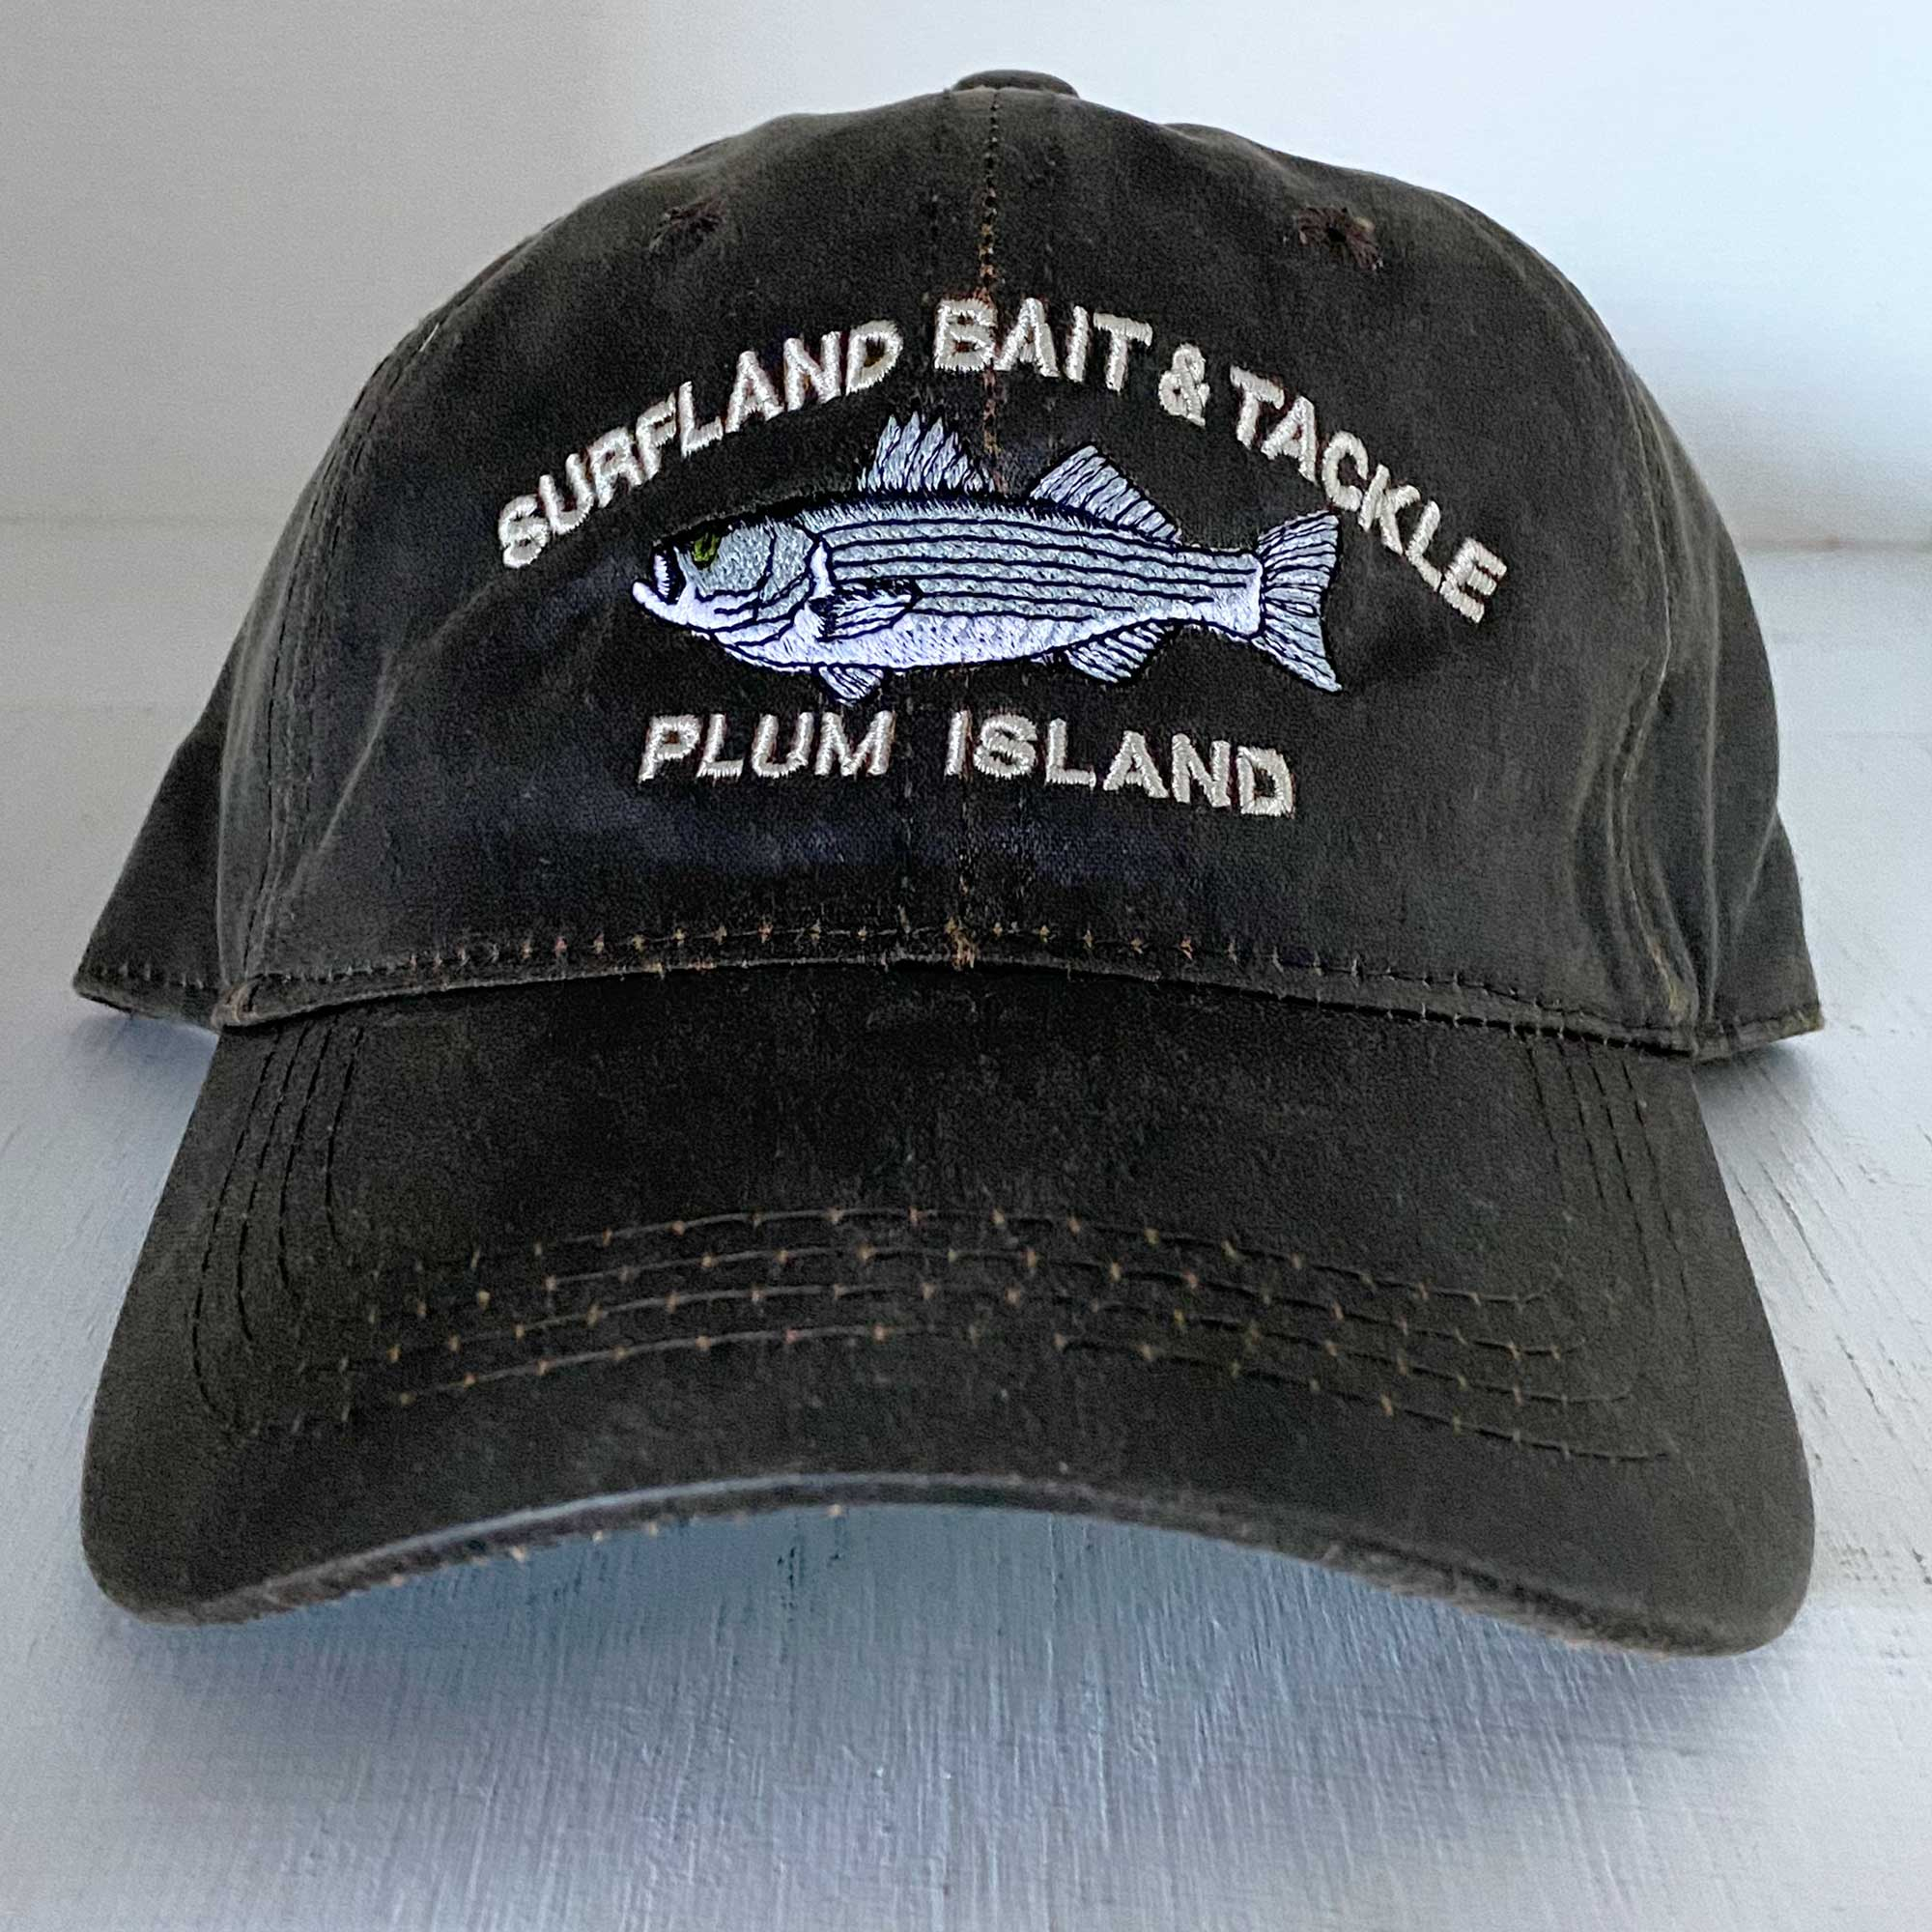 Surfland Gear - OC Weathered Cotton Twill Cap